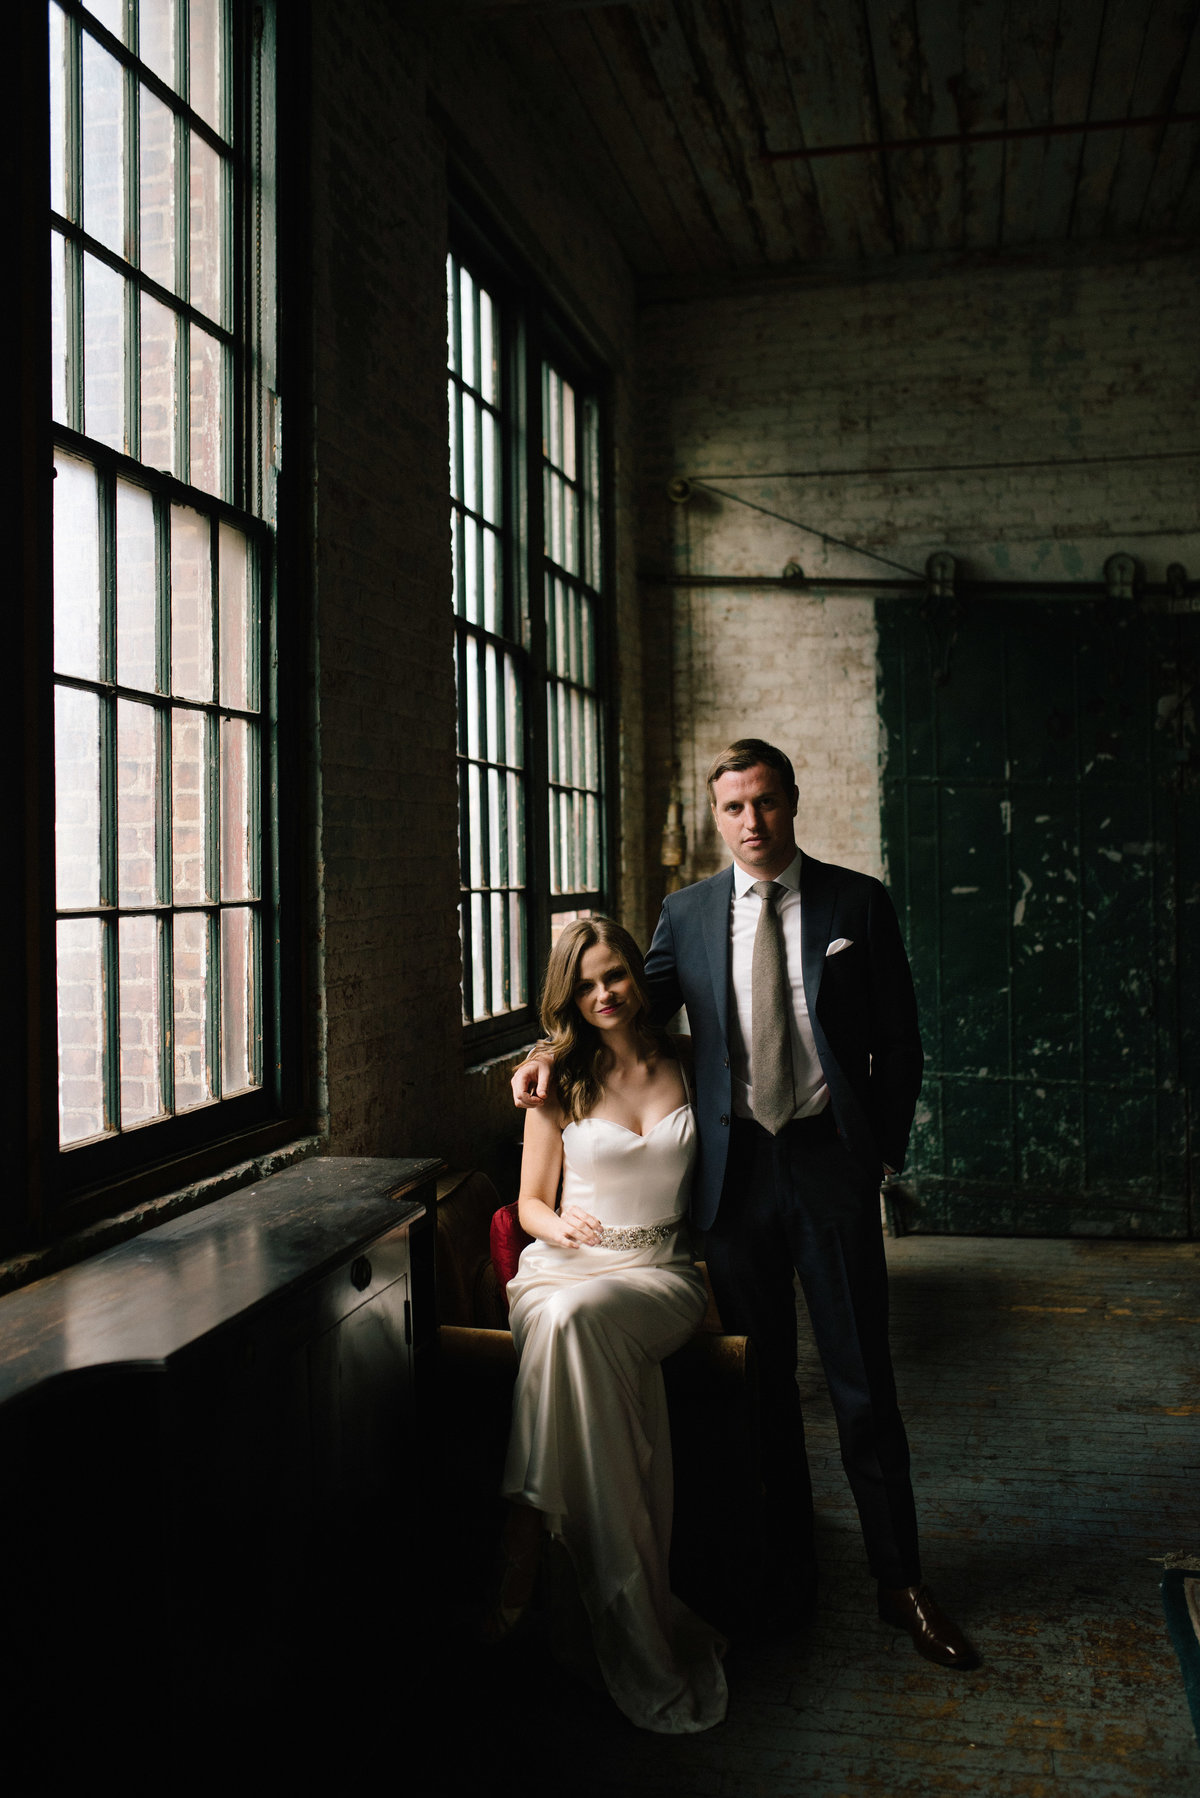 lic-brooklyn-queens-metropolitain-building-wedding-028